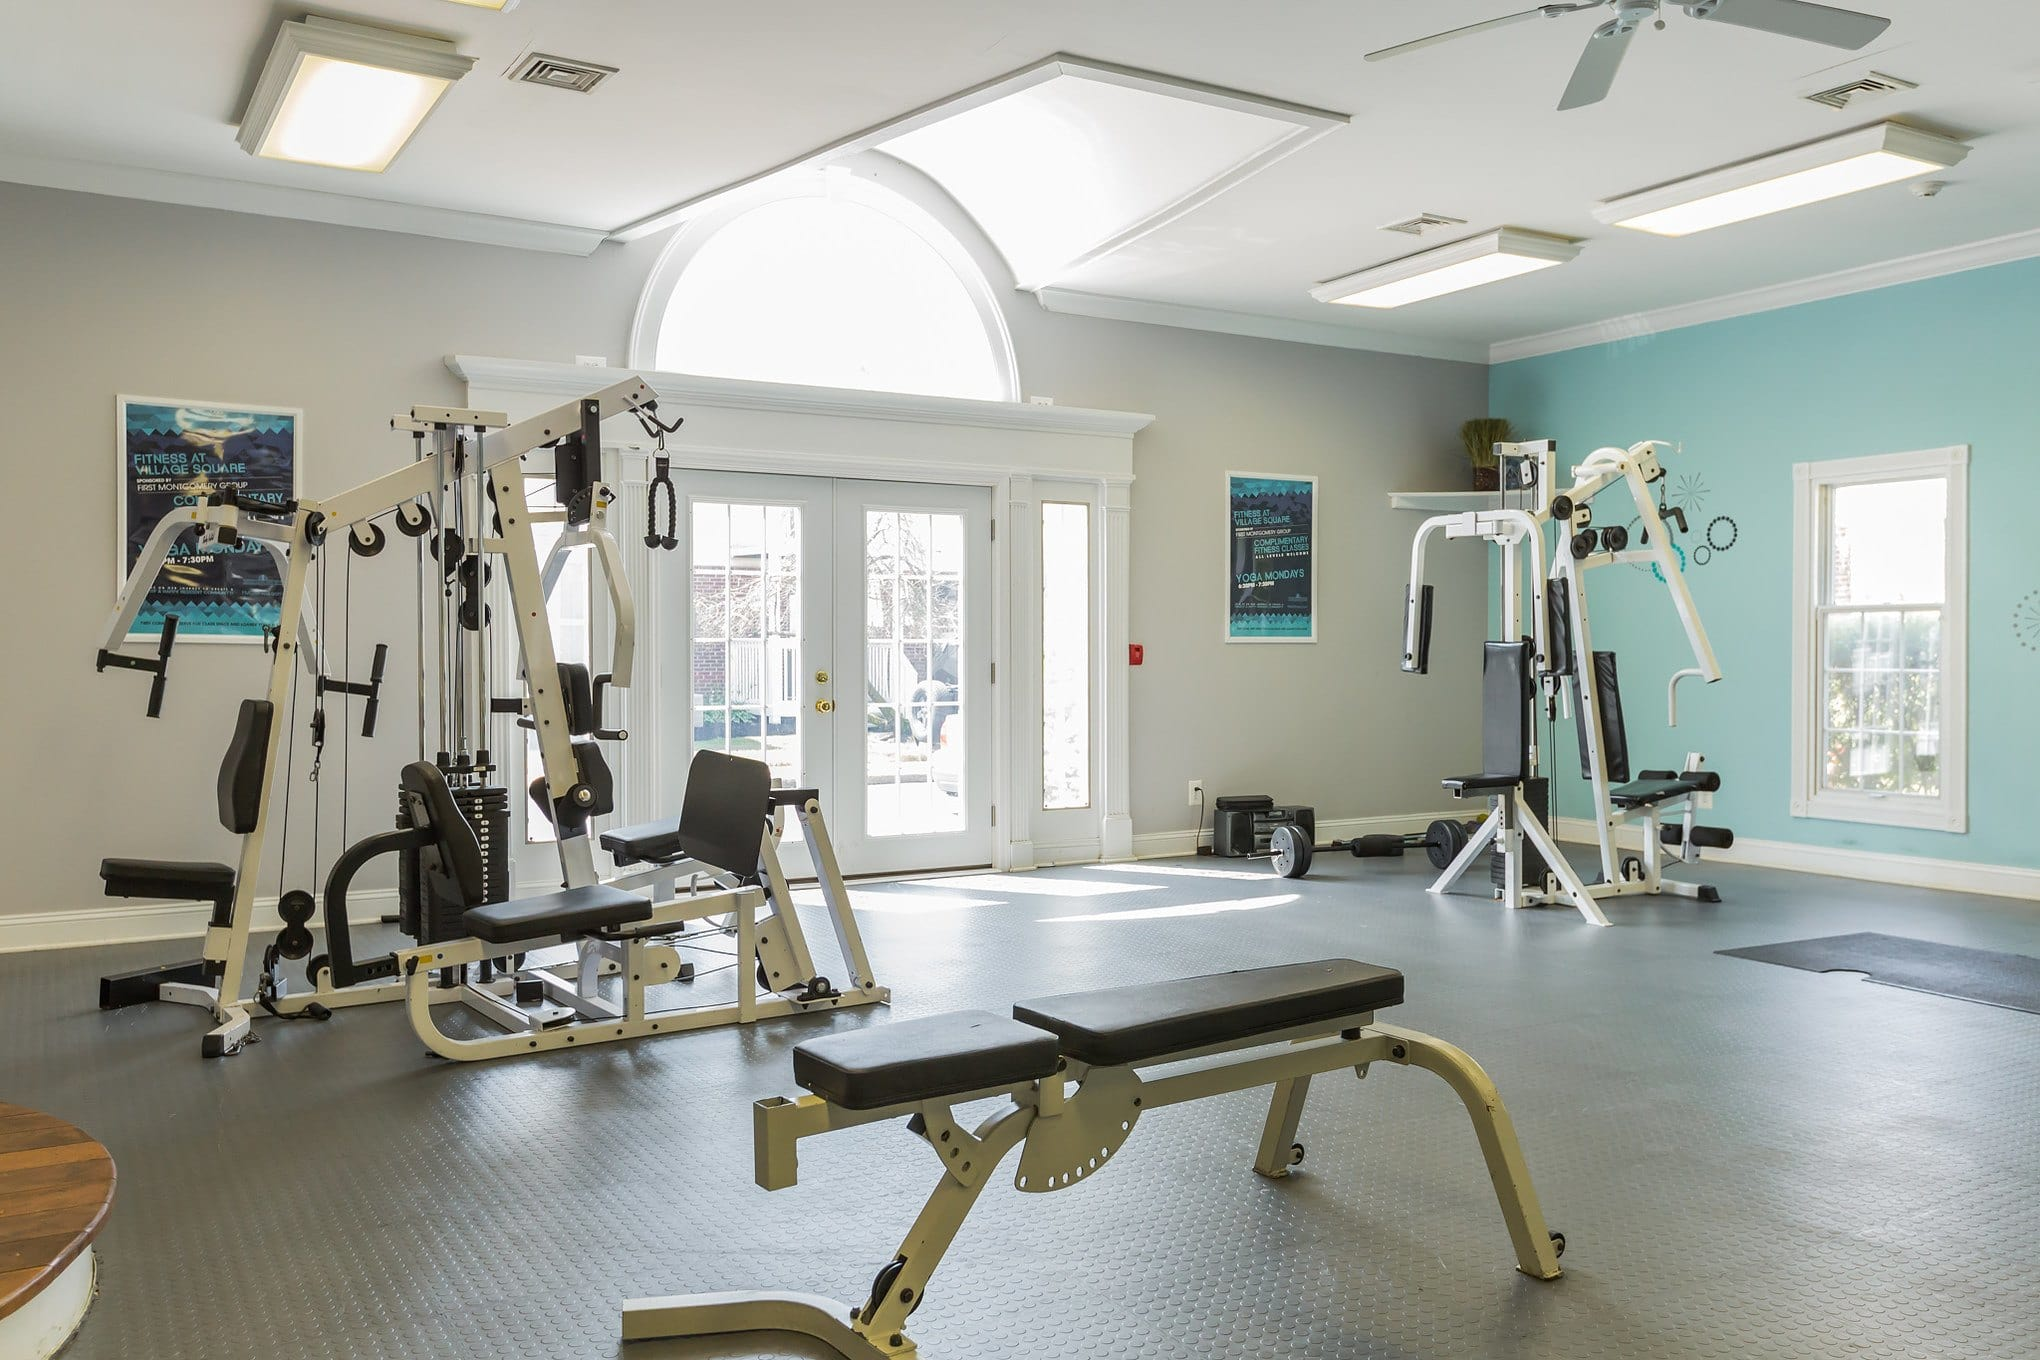 Gym Space at  Village Square Apartments in Mount Holly, NJ